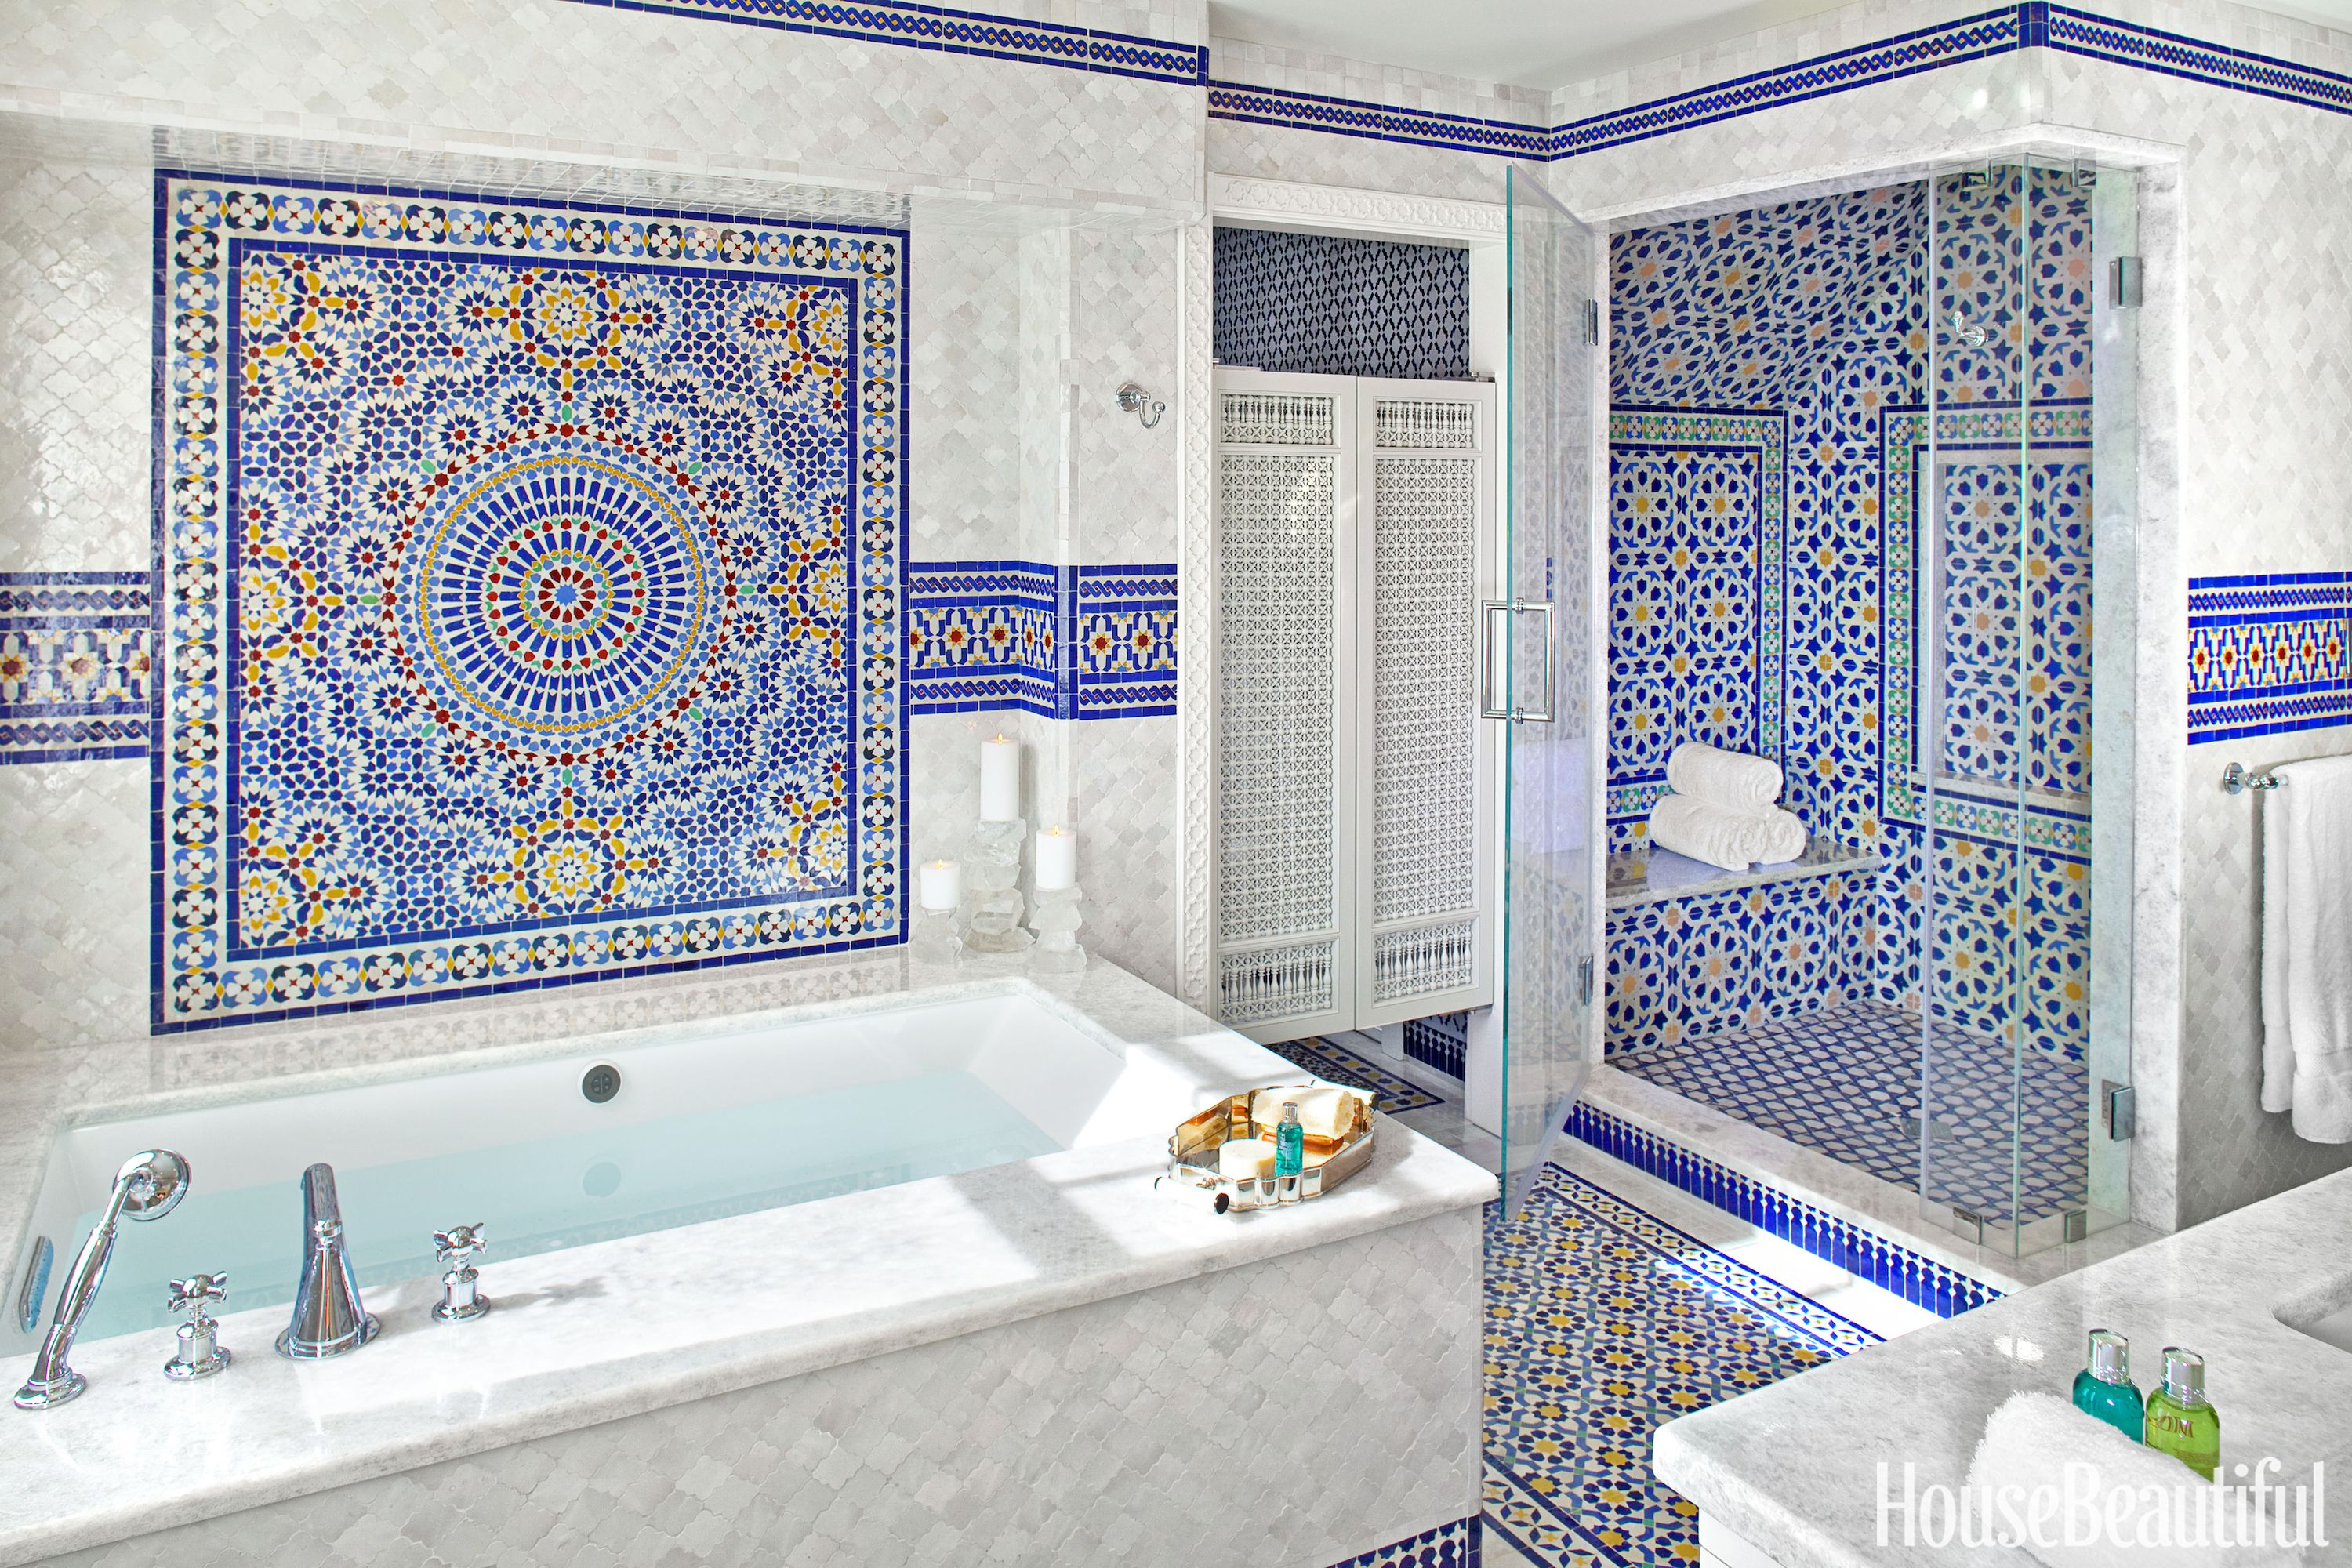 48 Bathroom Tile Design Ideas Backsplash And Floor Designs For Bathrooms